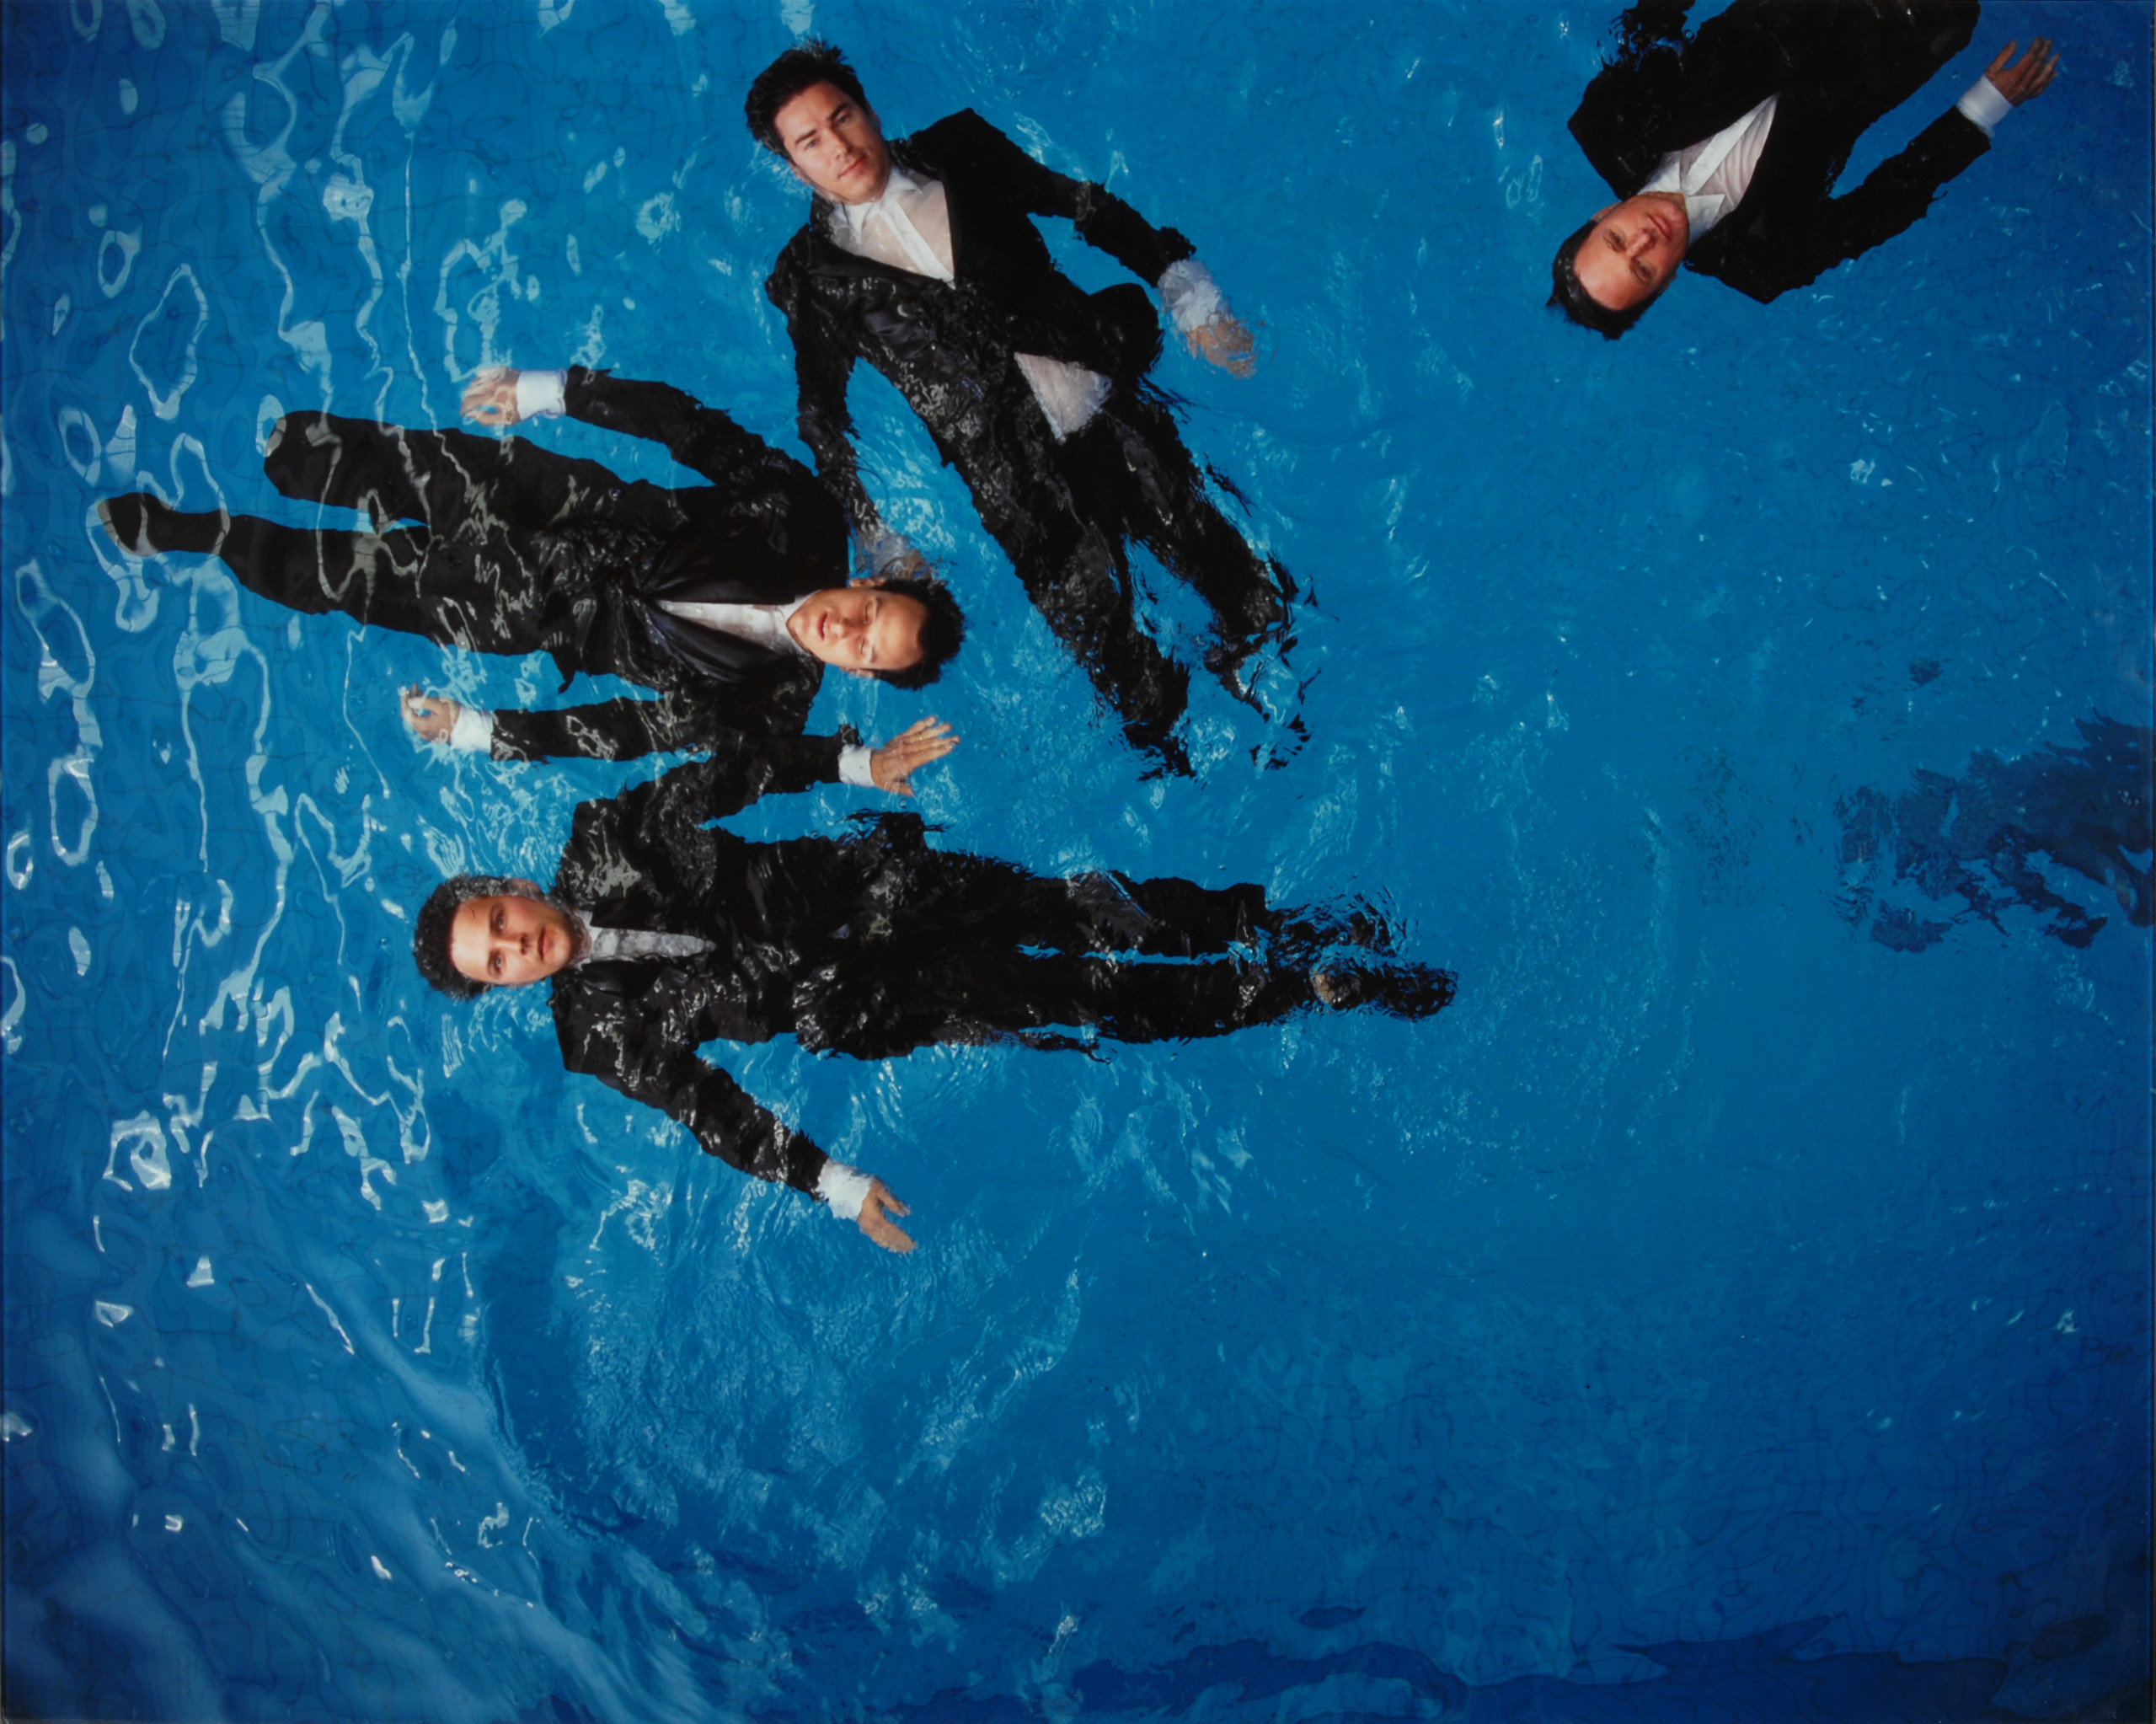 A photograph of four light-skinned figures with short brown hair, wearing black suits with white shirts, floating on their backs in a deep blue pool. The viewer looks down on the figures from above. One figure has their eyes closed, the rest have their eyes open.